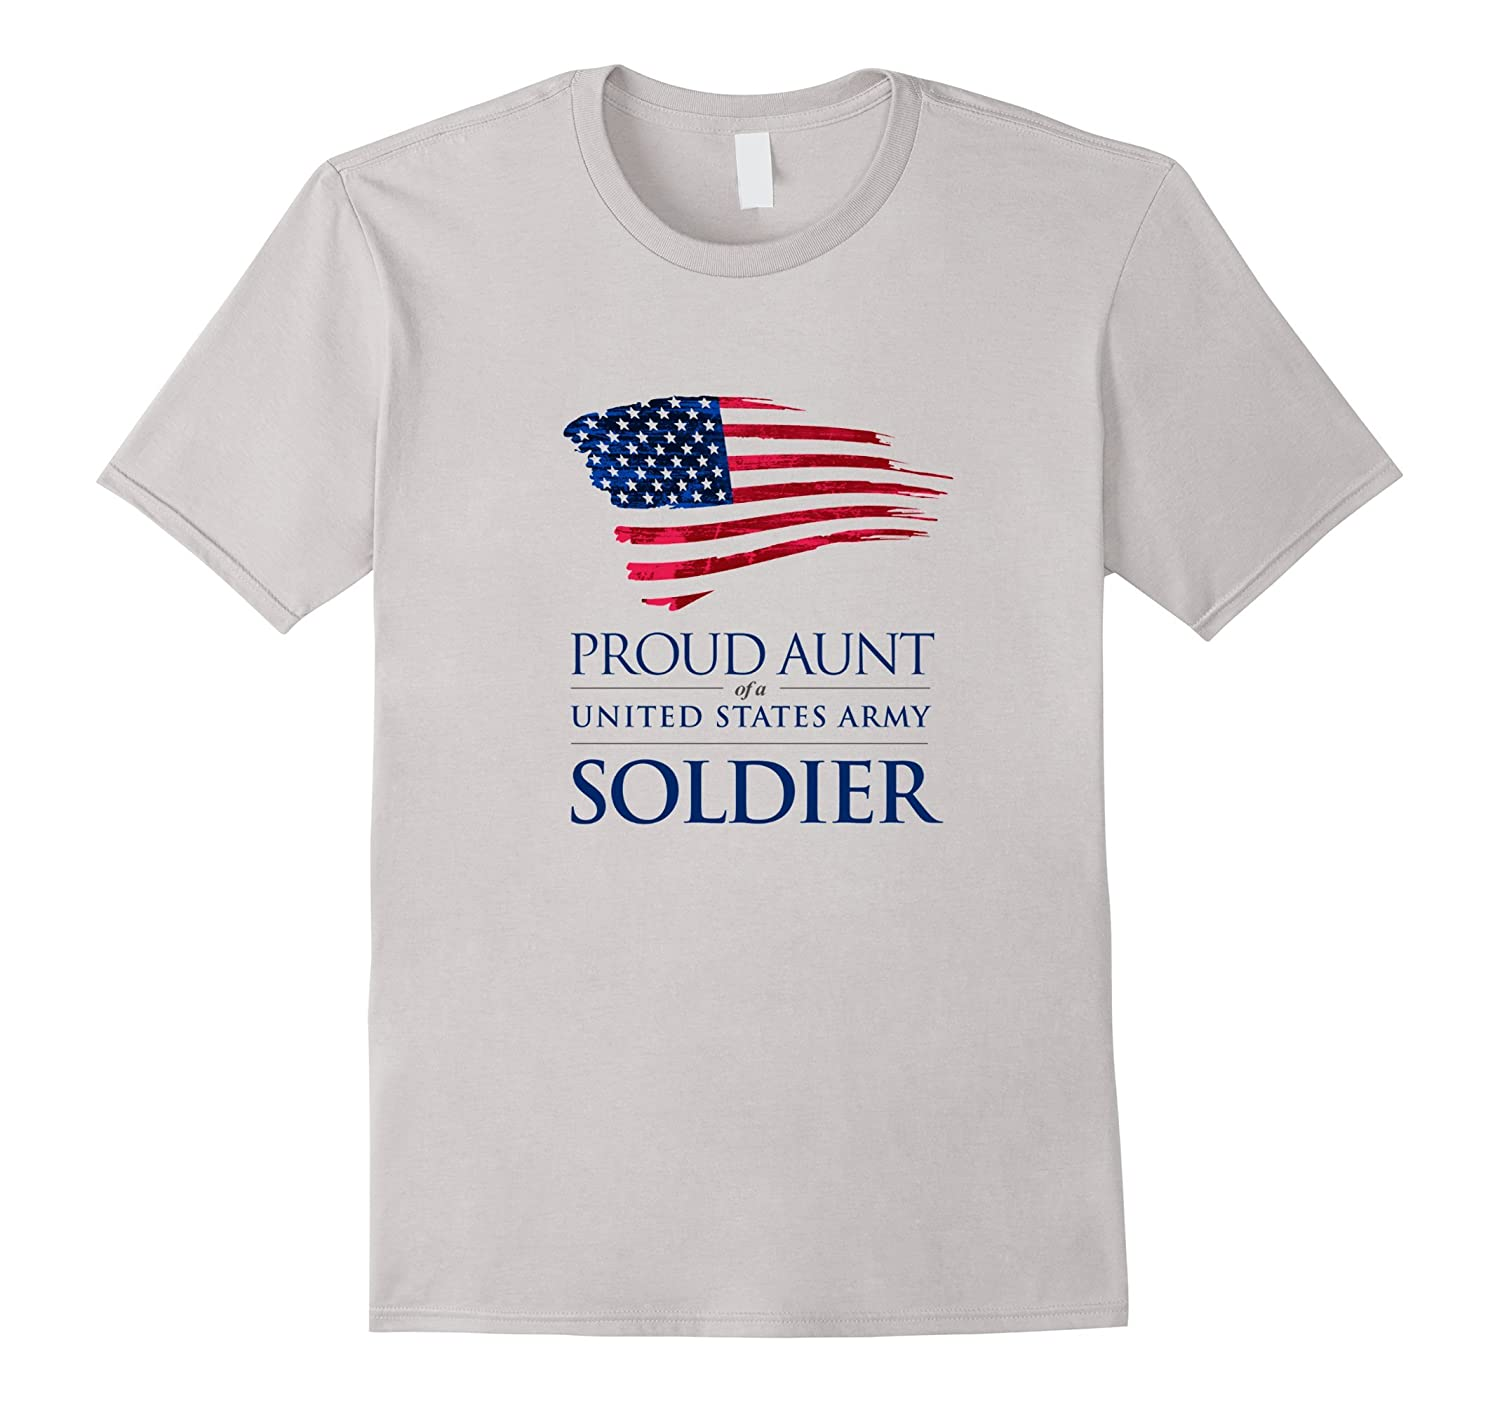 Proud Aunt of a US Army Soldier American Flag T-Shirt-TD